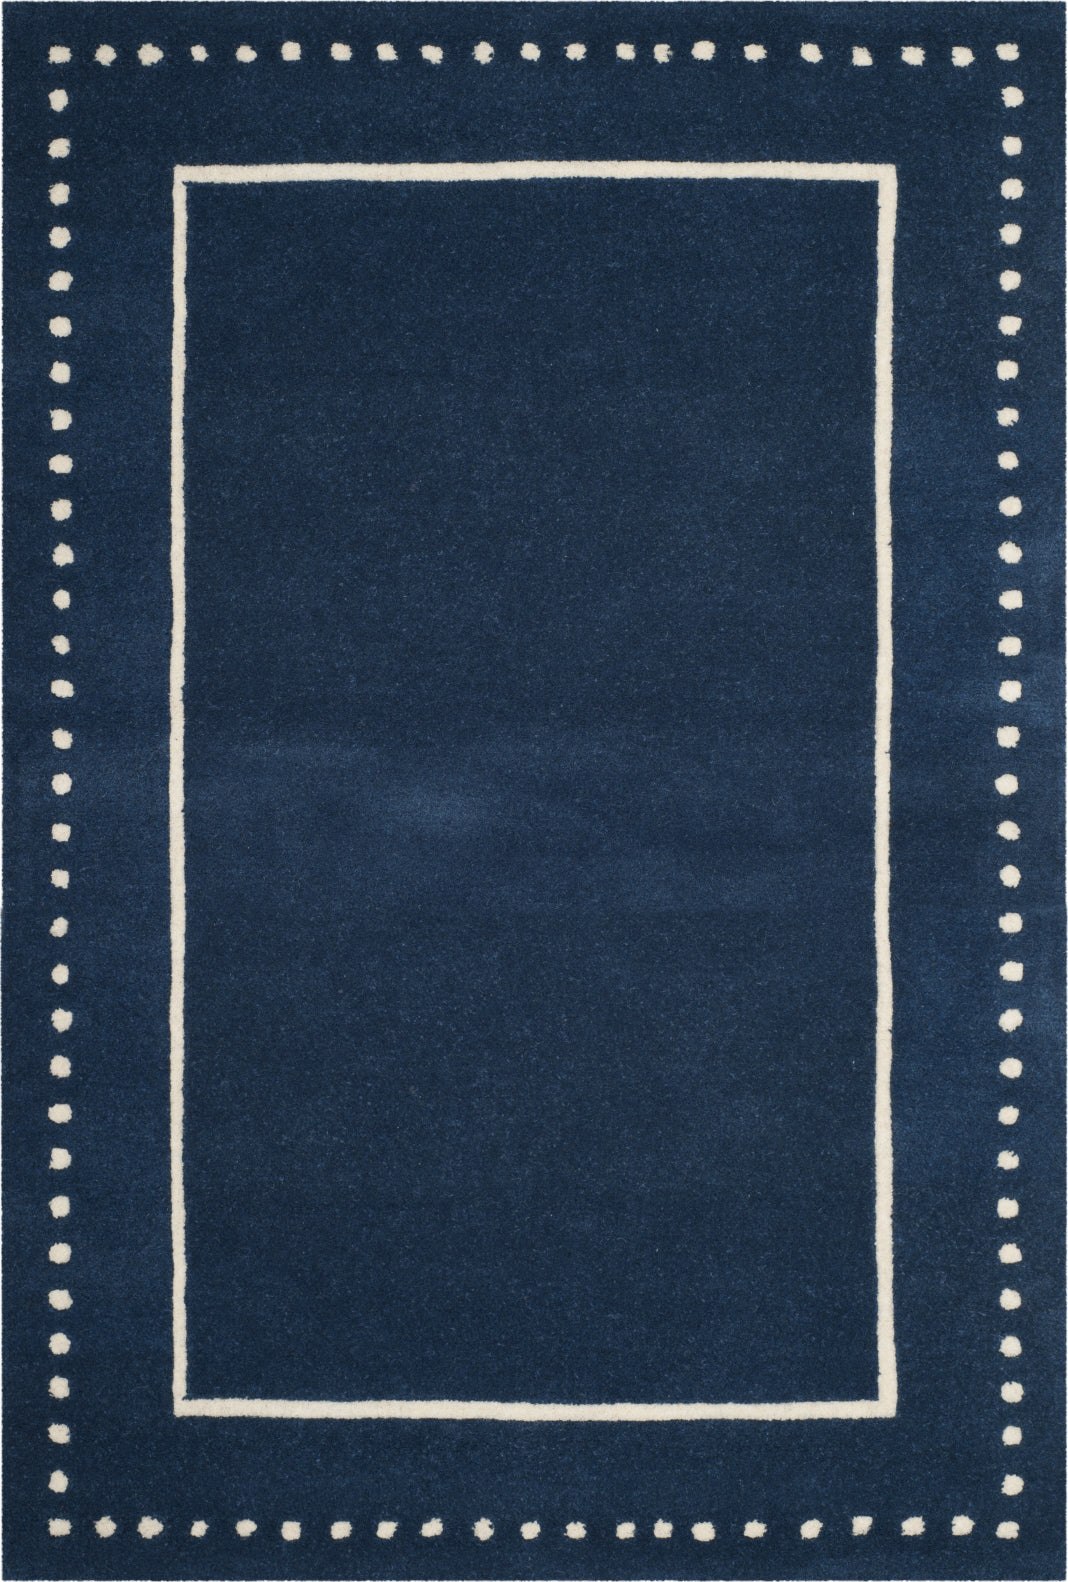 Safavieh Bella 151 Navy Blue/Ivory Area Rug main image